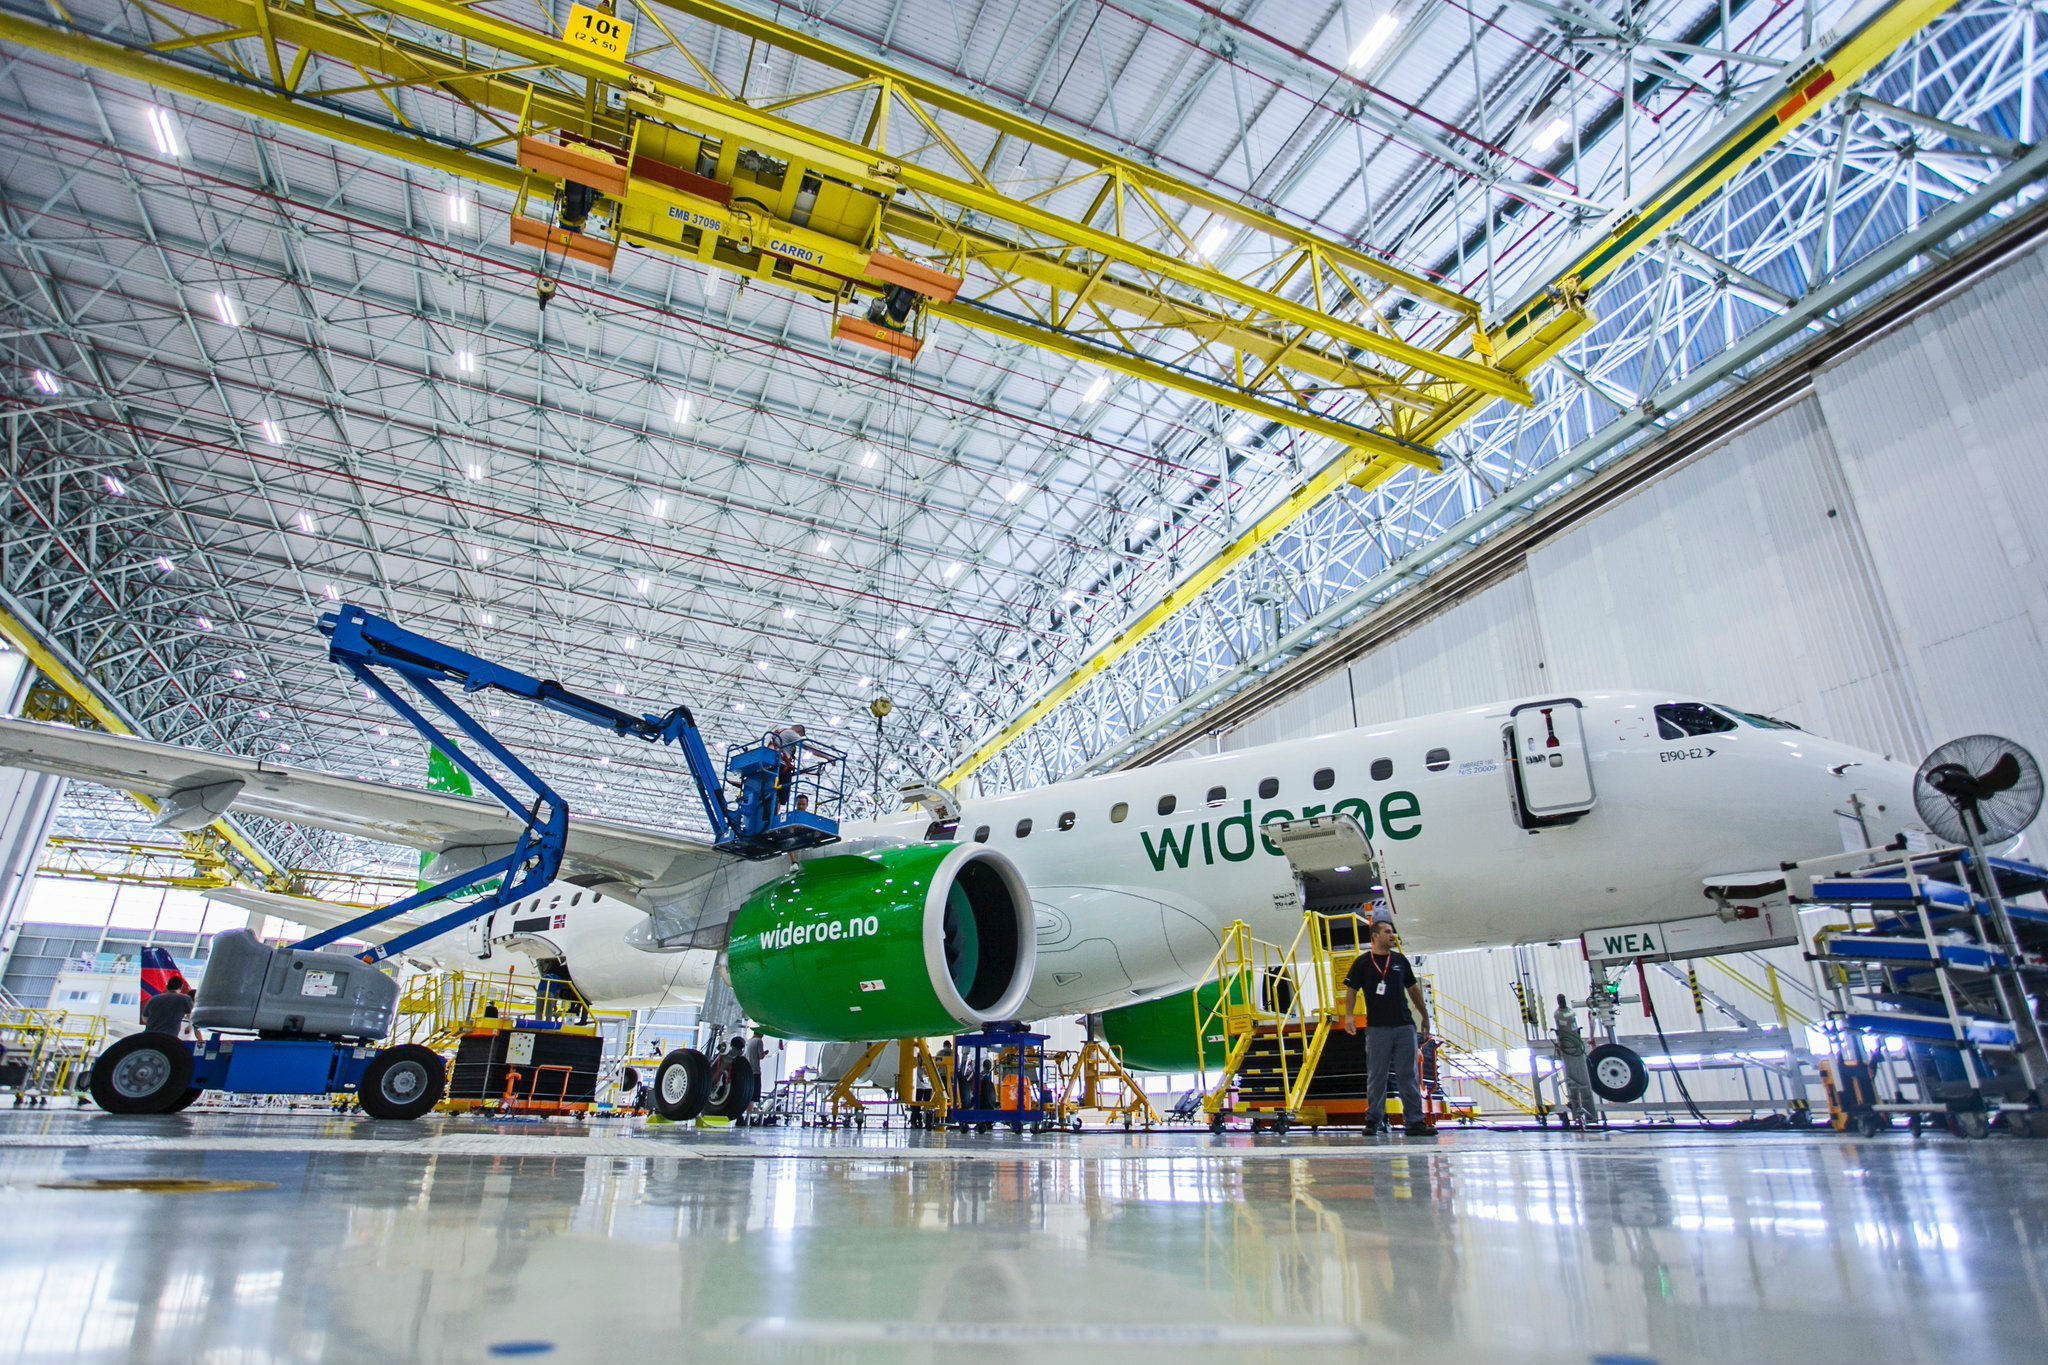 Norway's Widerøe receives world's first Embraer E190-E2